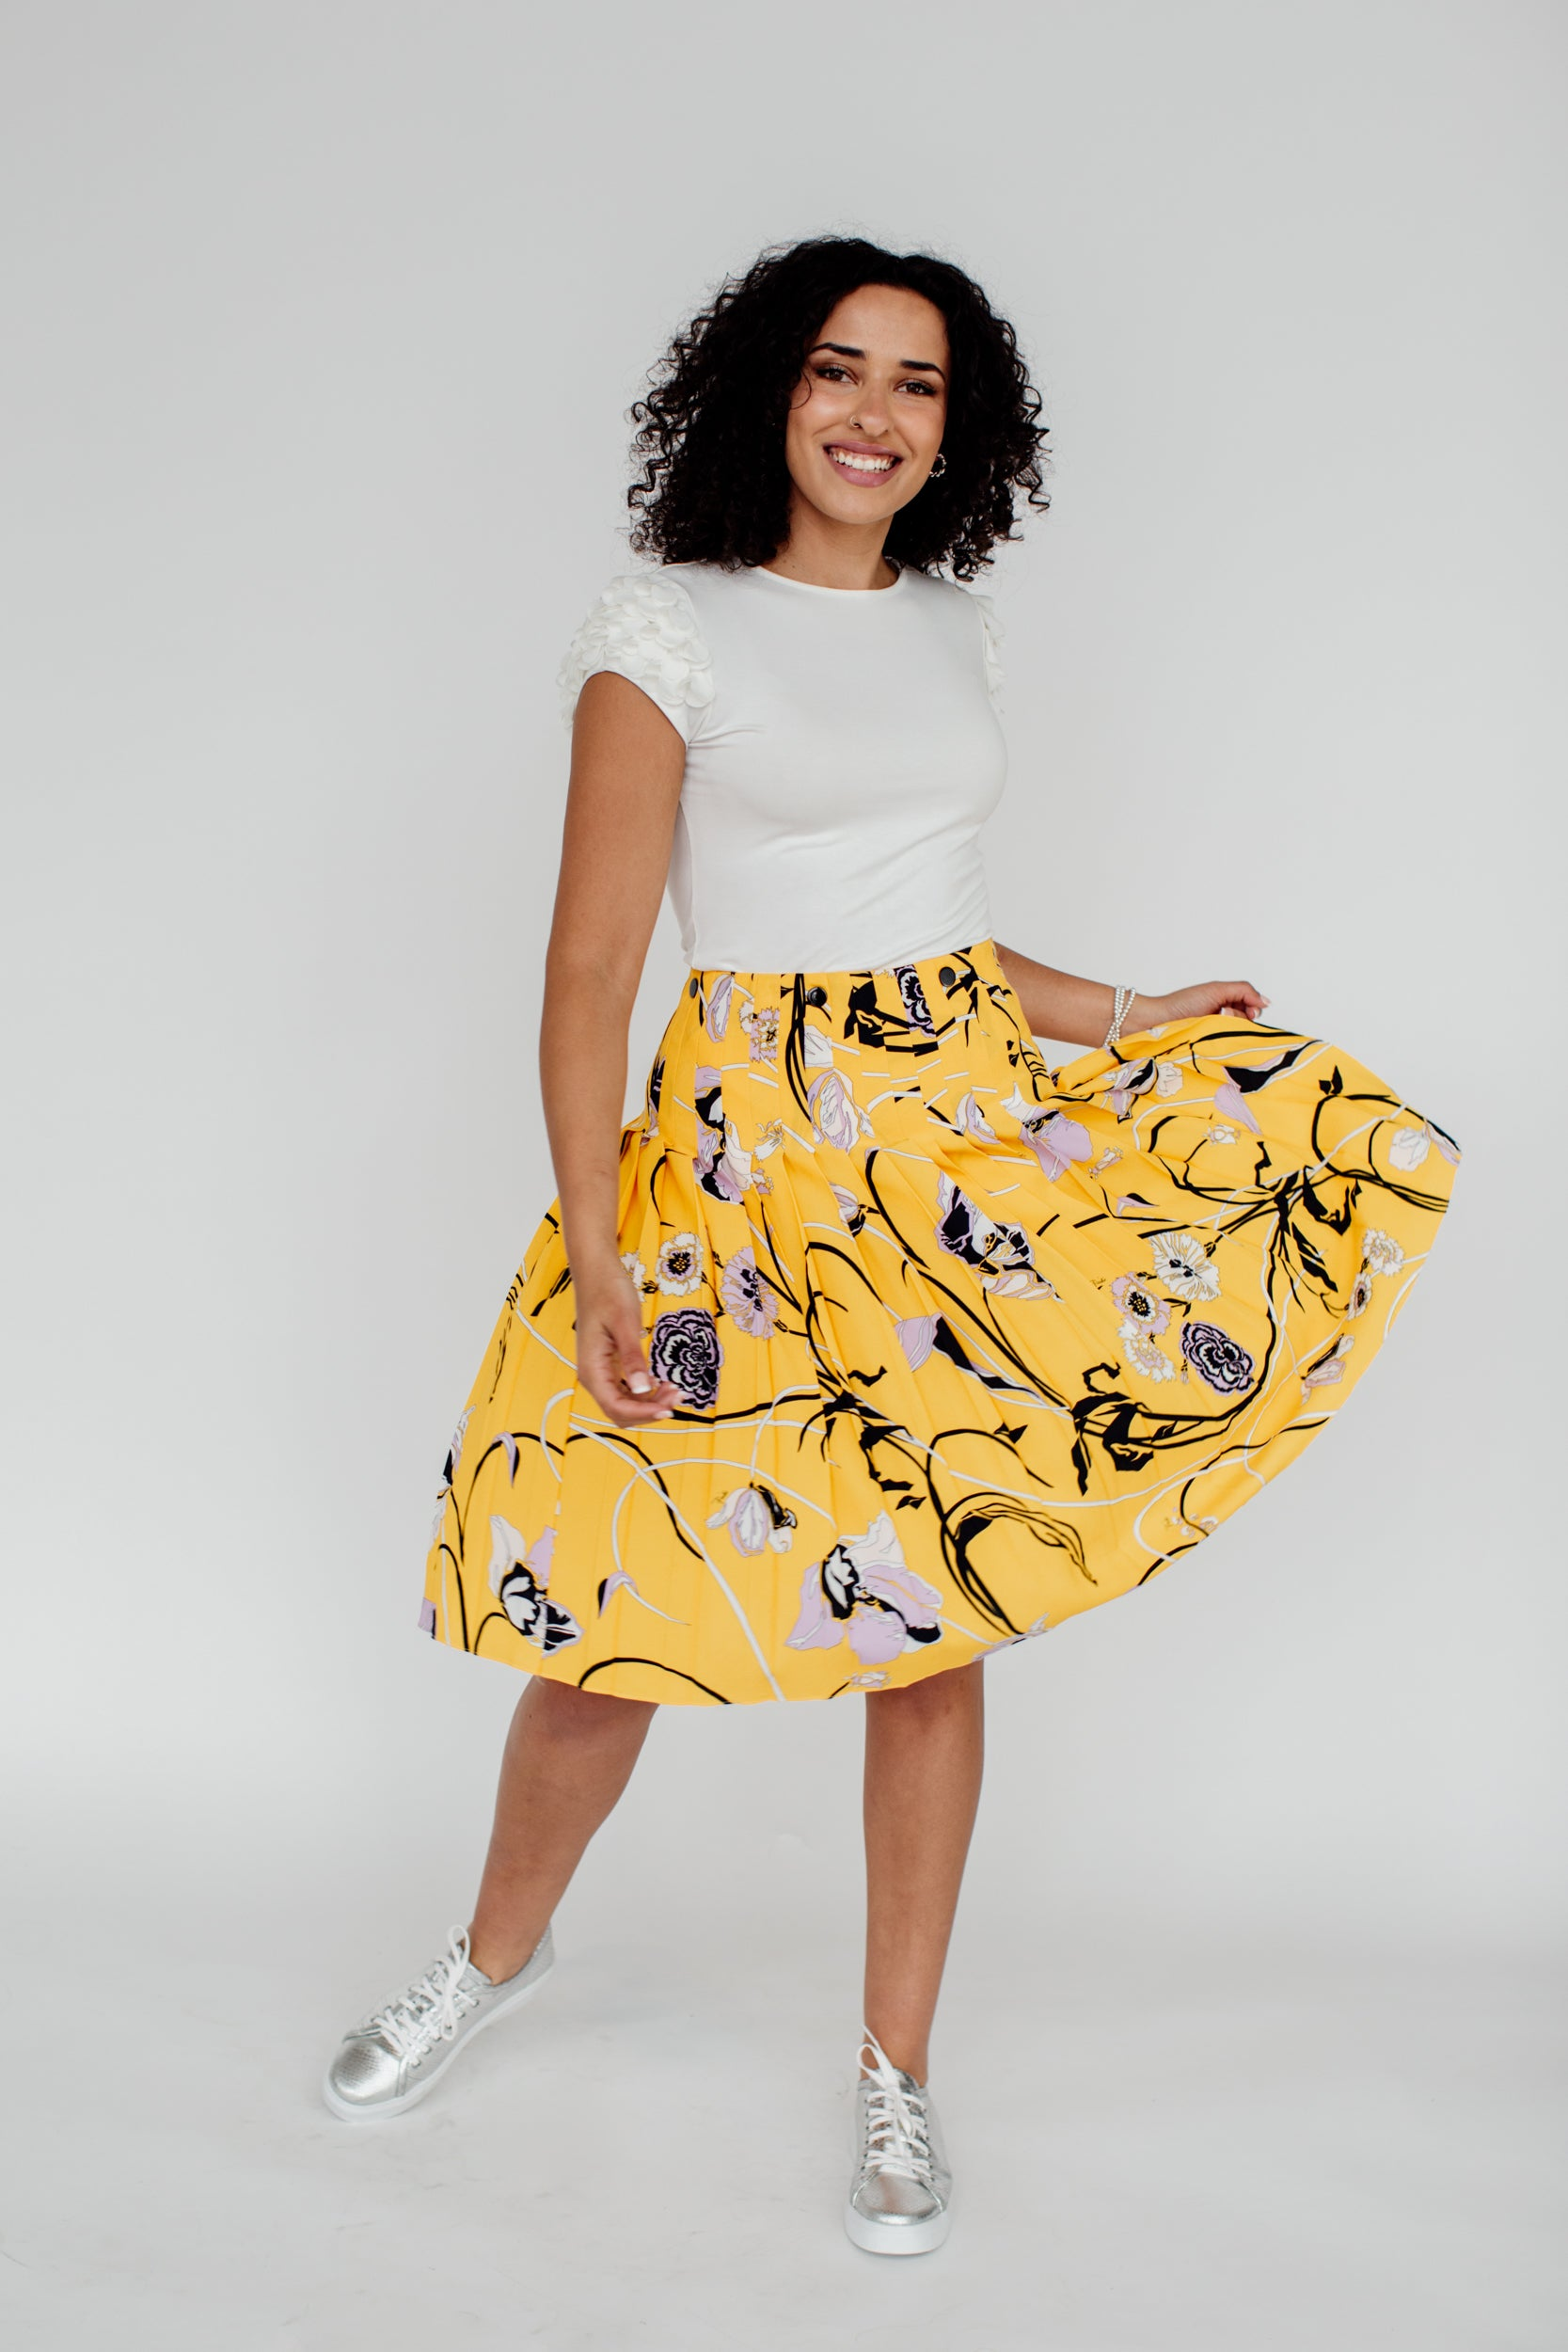 A woman in a yellow skirt dances.